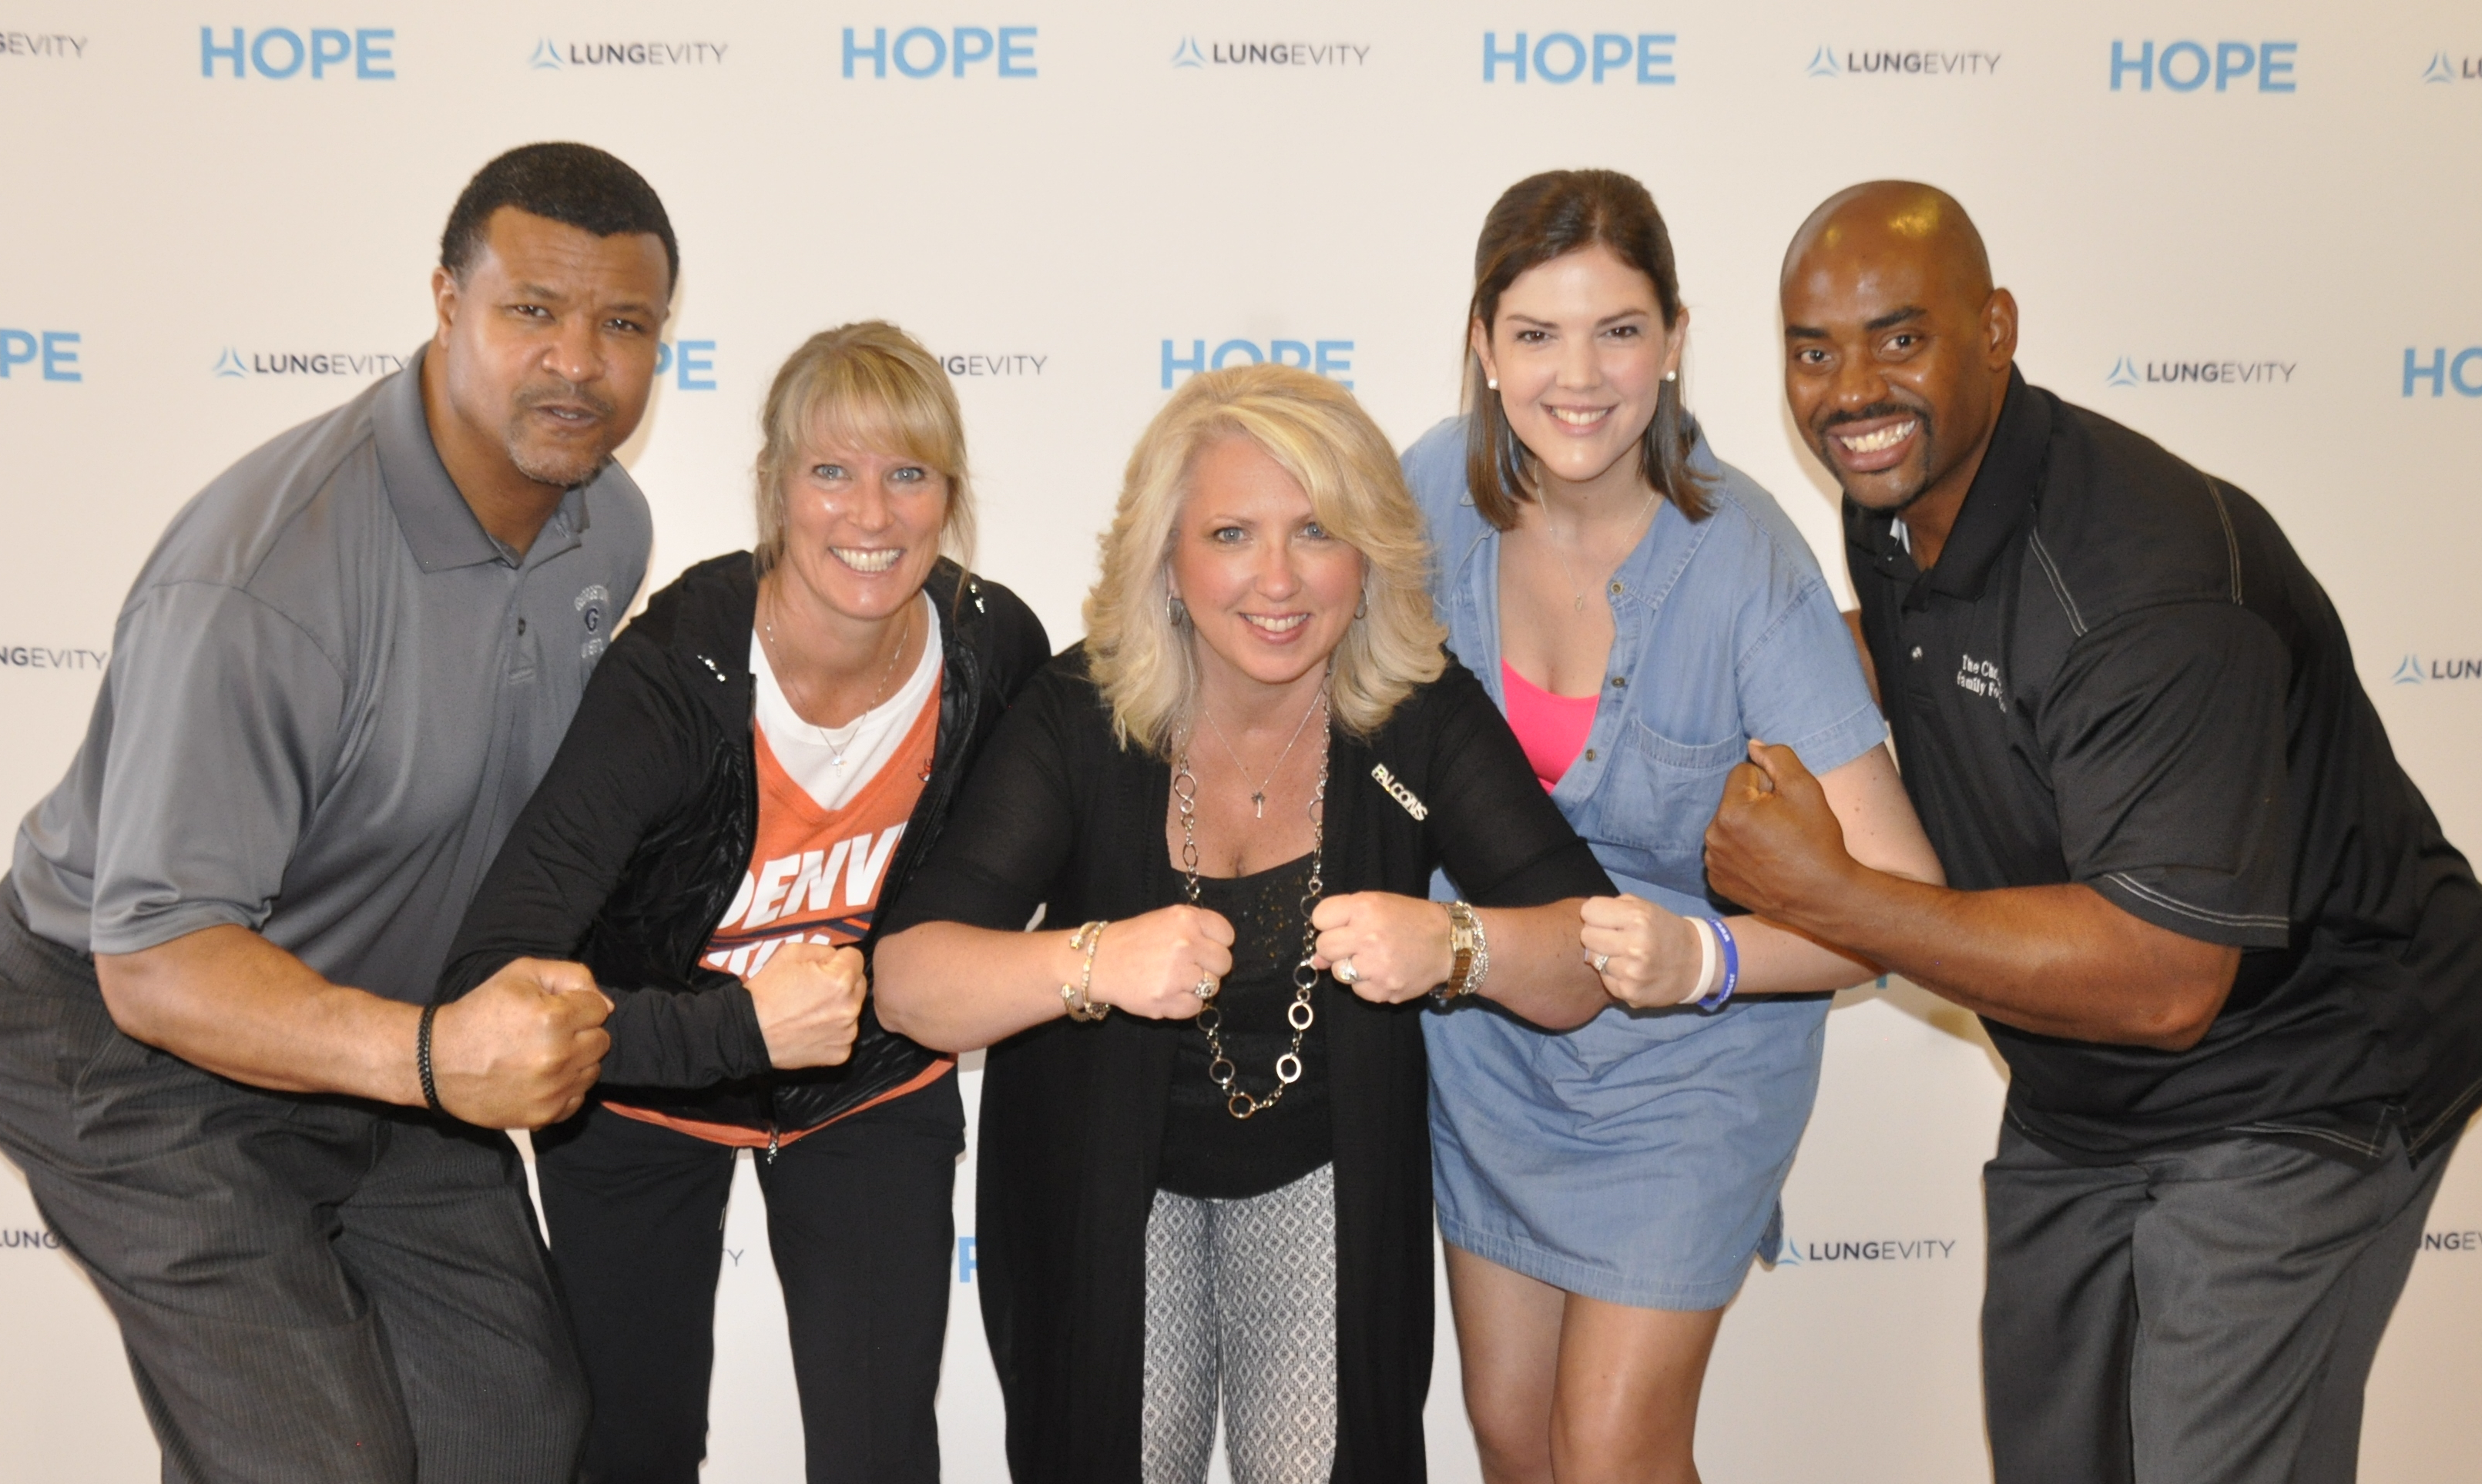 NFL Ambassador and International Health Care Advocate Chris Draft Brings Hopeful Message to Nation�s Largest Gathering of Lung Cancer Survivors